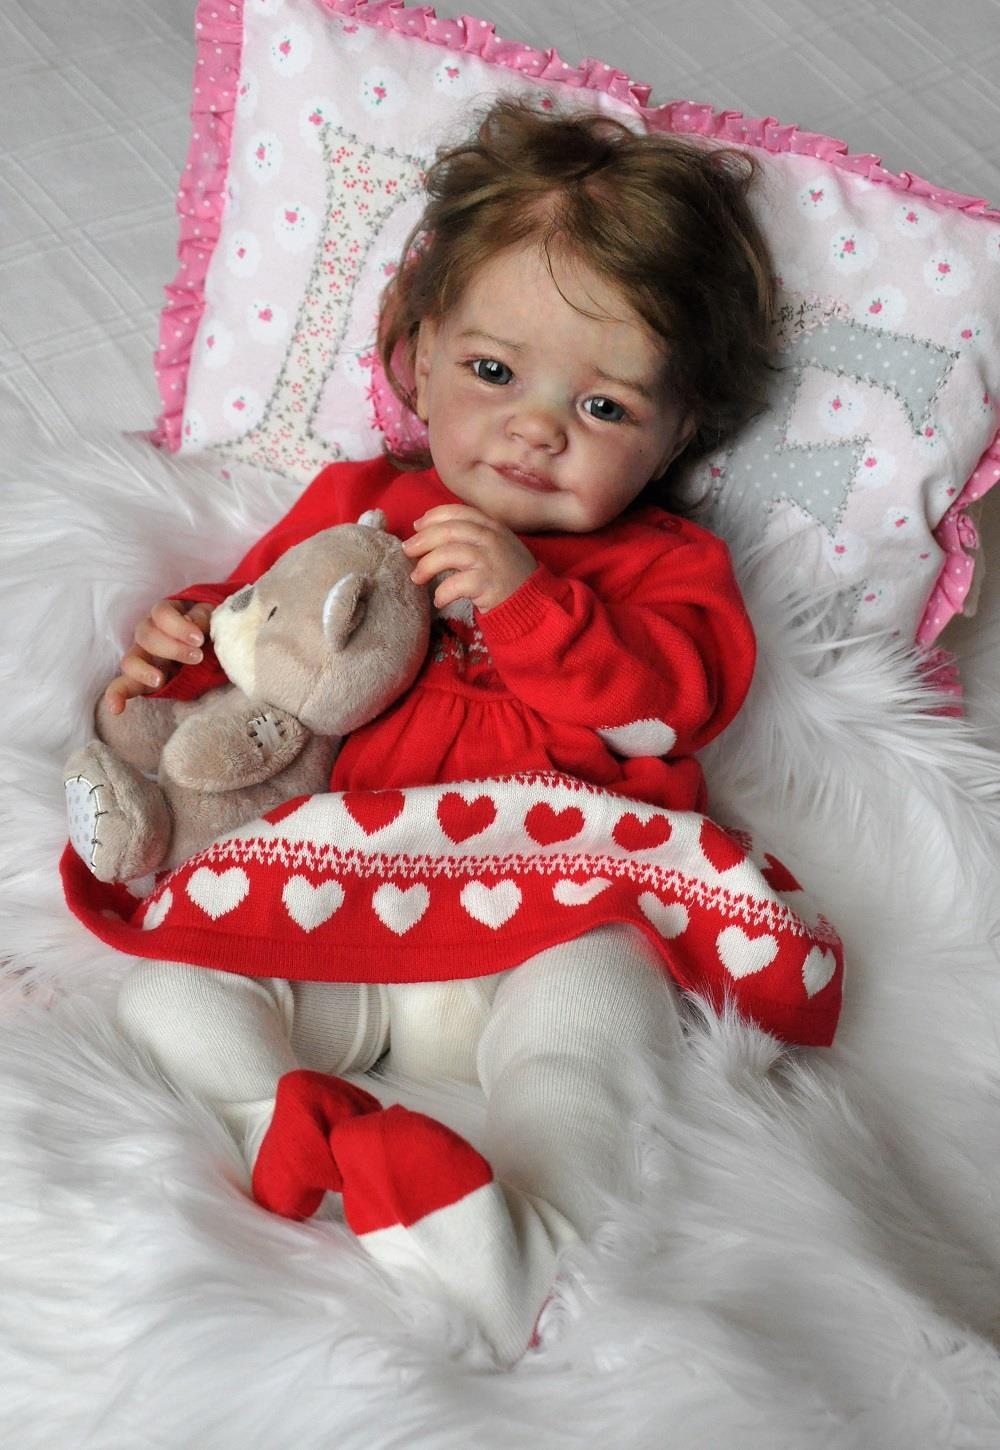 Super Realistic Reborn Baby For Sale - Our Life With Reborns